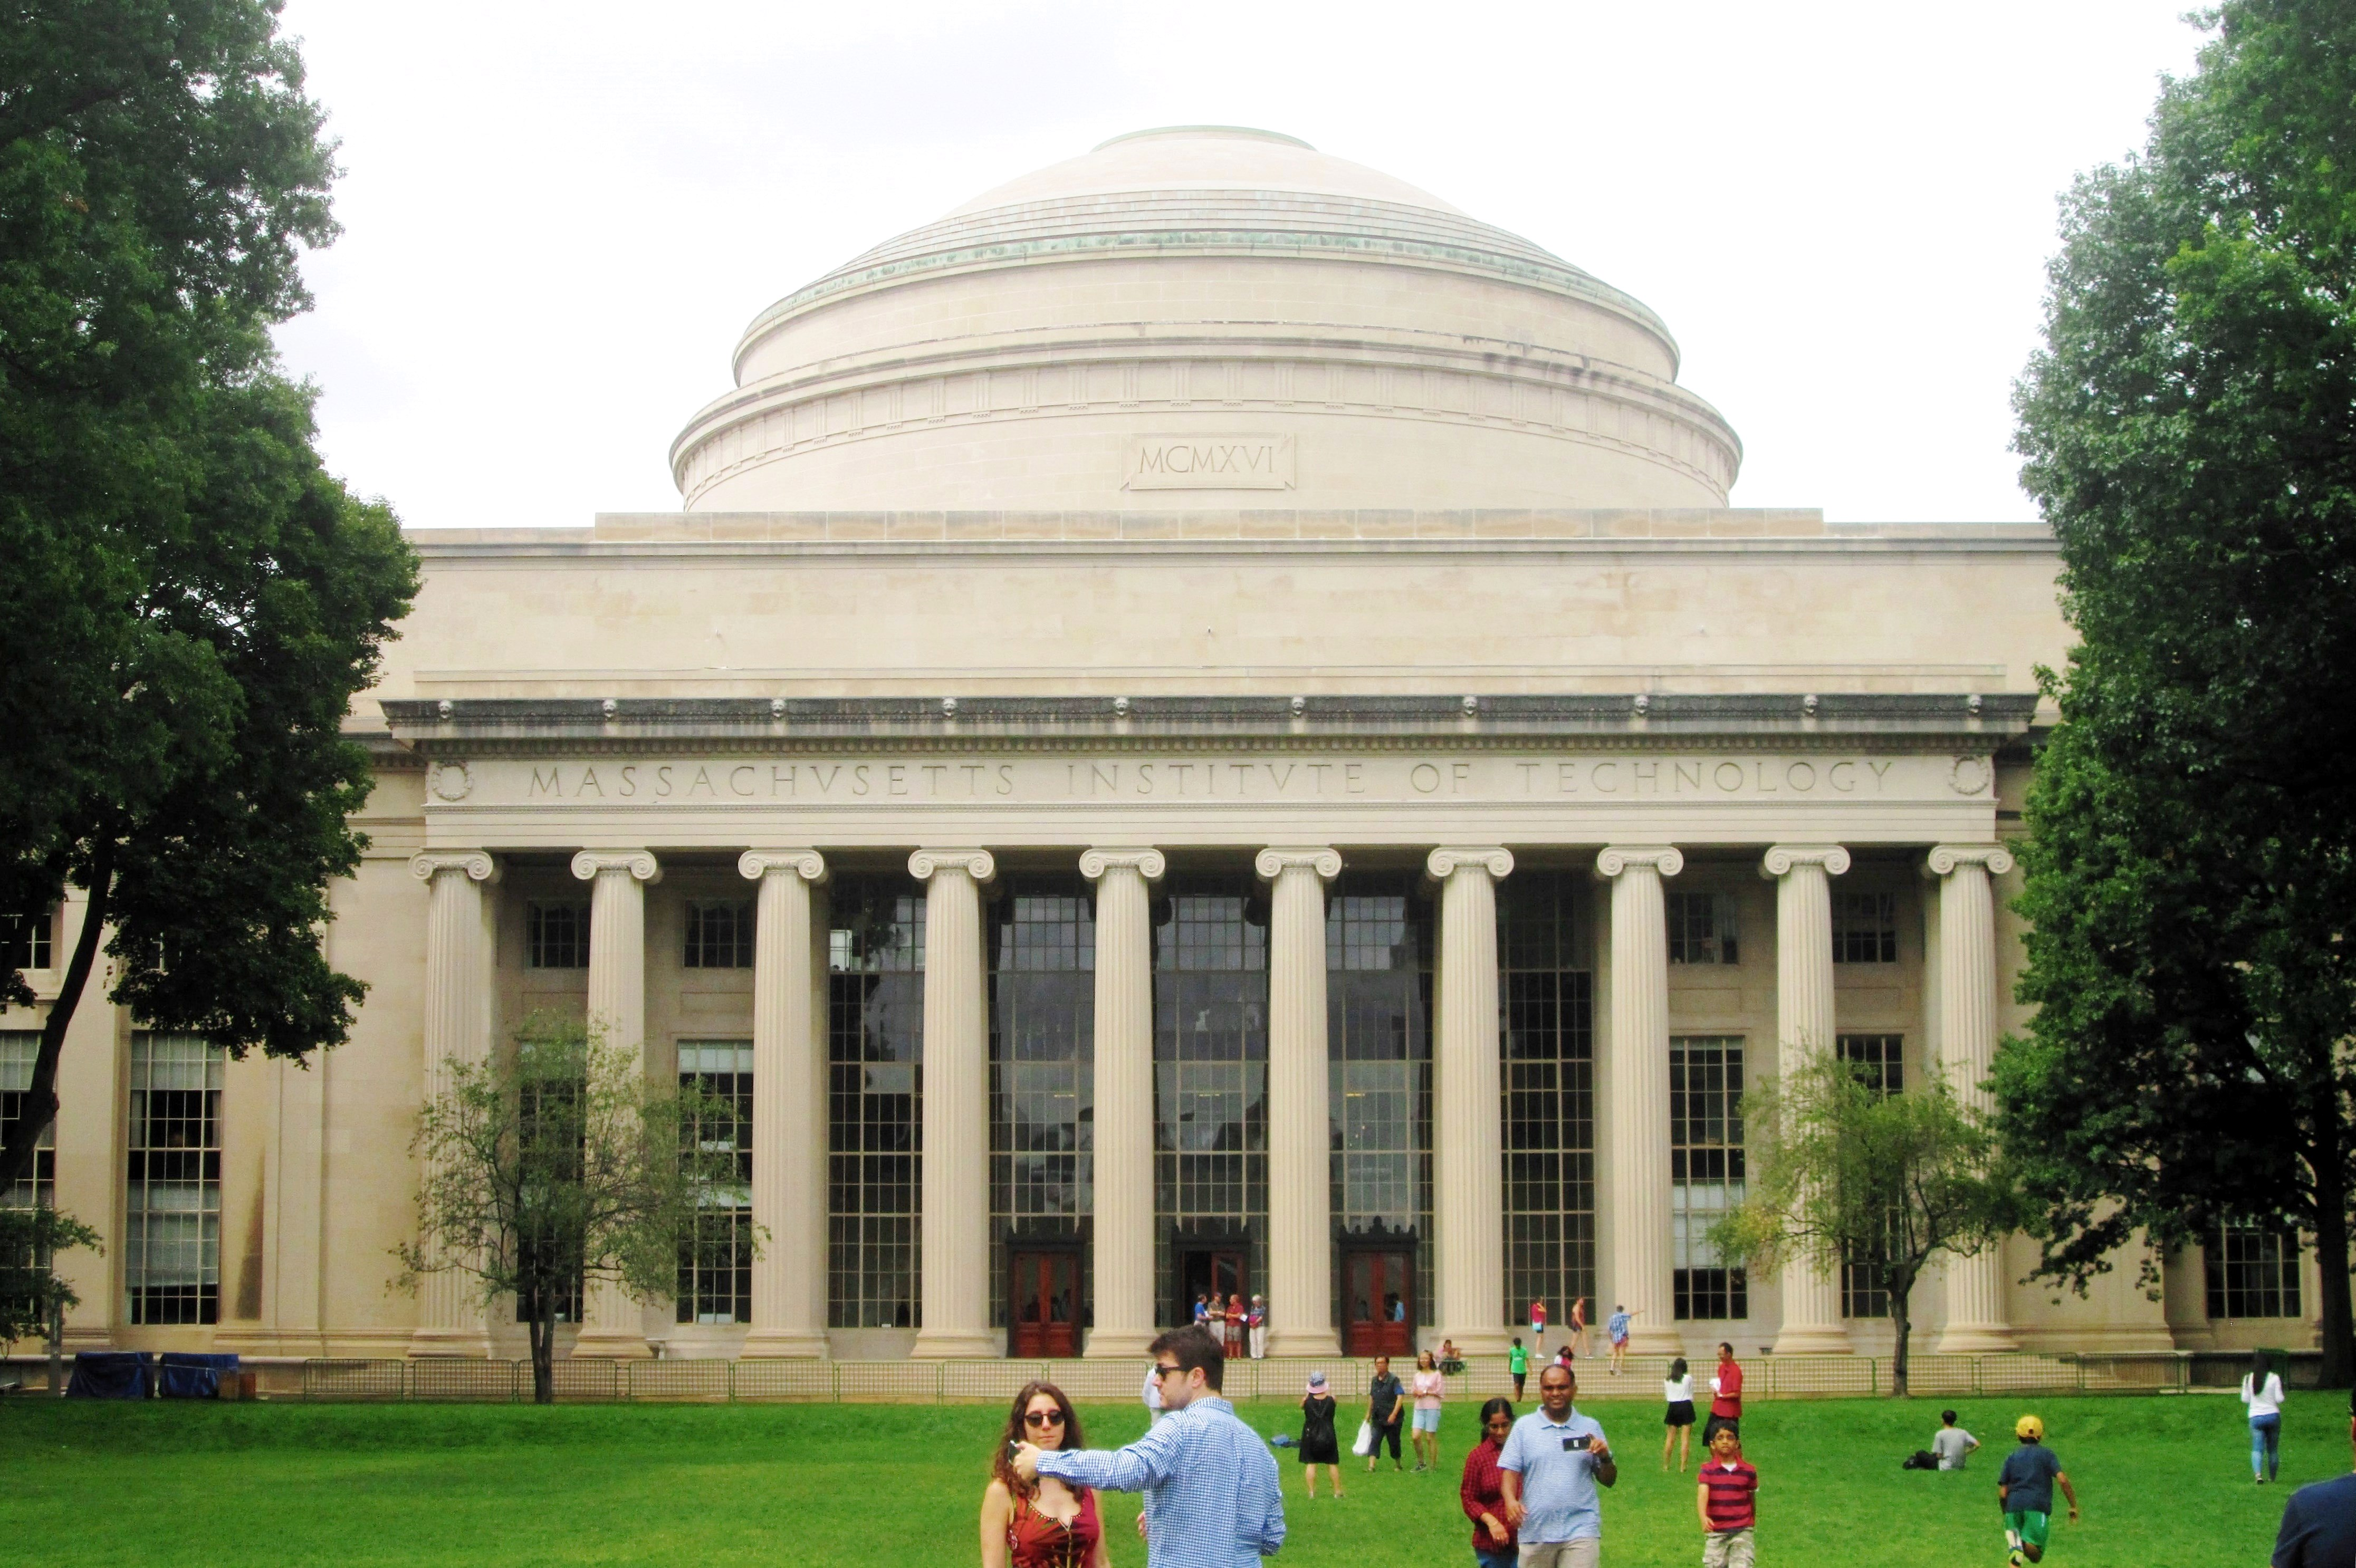 File:2017 Maclaurin Buildings (MIT Building 10) and Great Dome close on syracuse campus map, nist gaithersburg campus map, u mass boston campus map, navy campus map, morrisville state campus map, johns hopkins university campus map, illinois tech campus map, mass college of art campus map, unt health science center campus map, dartmouth university campus map, new bolton center campus map, la roche campus map, motorola campus map, loras campus map, uplb campus map, stevens tech campus map, ie business school campus map, stan state campus map, university of michigan campus map, harvard campus map,